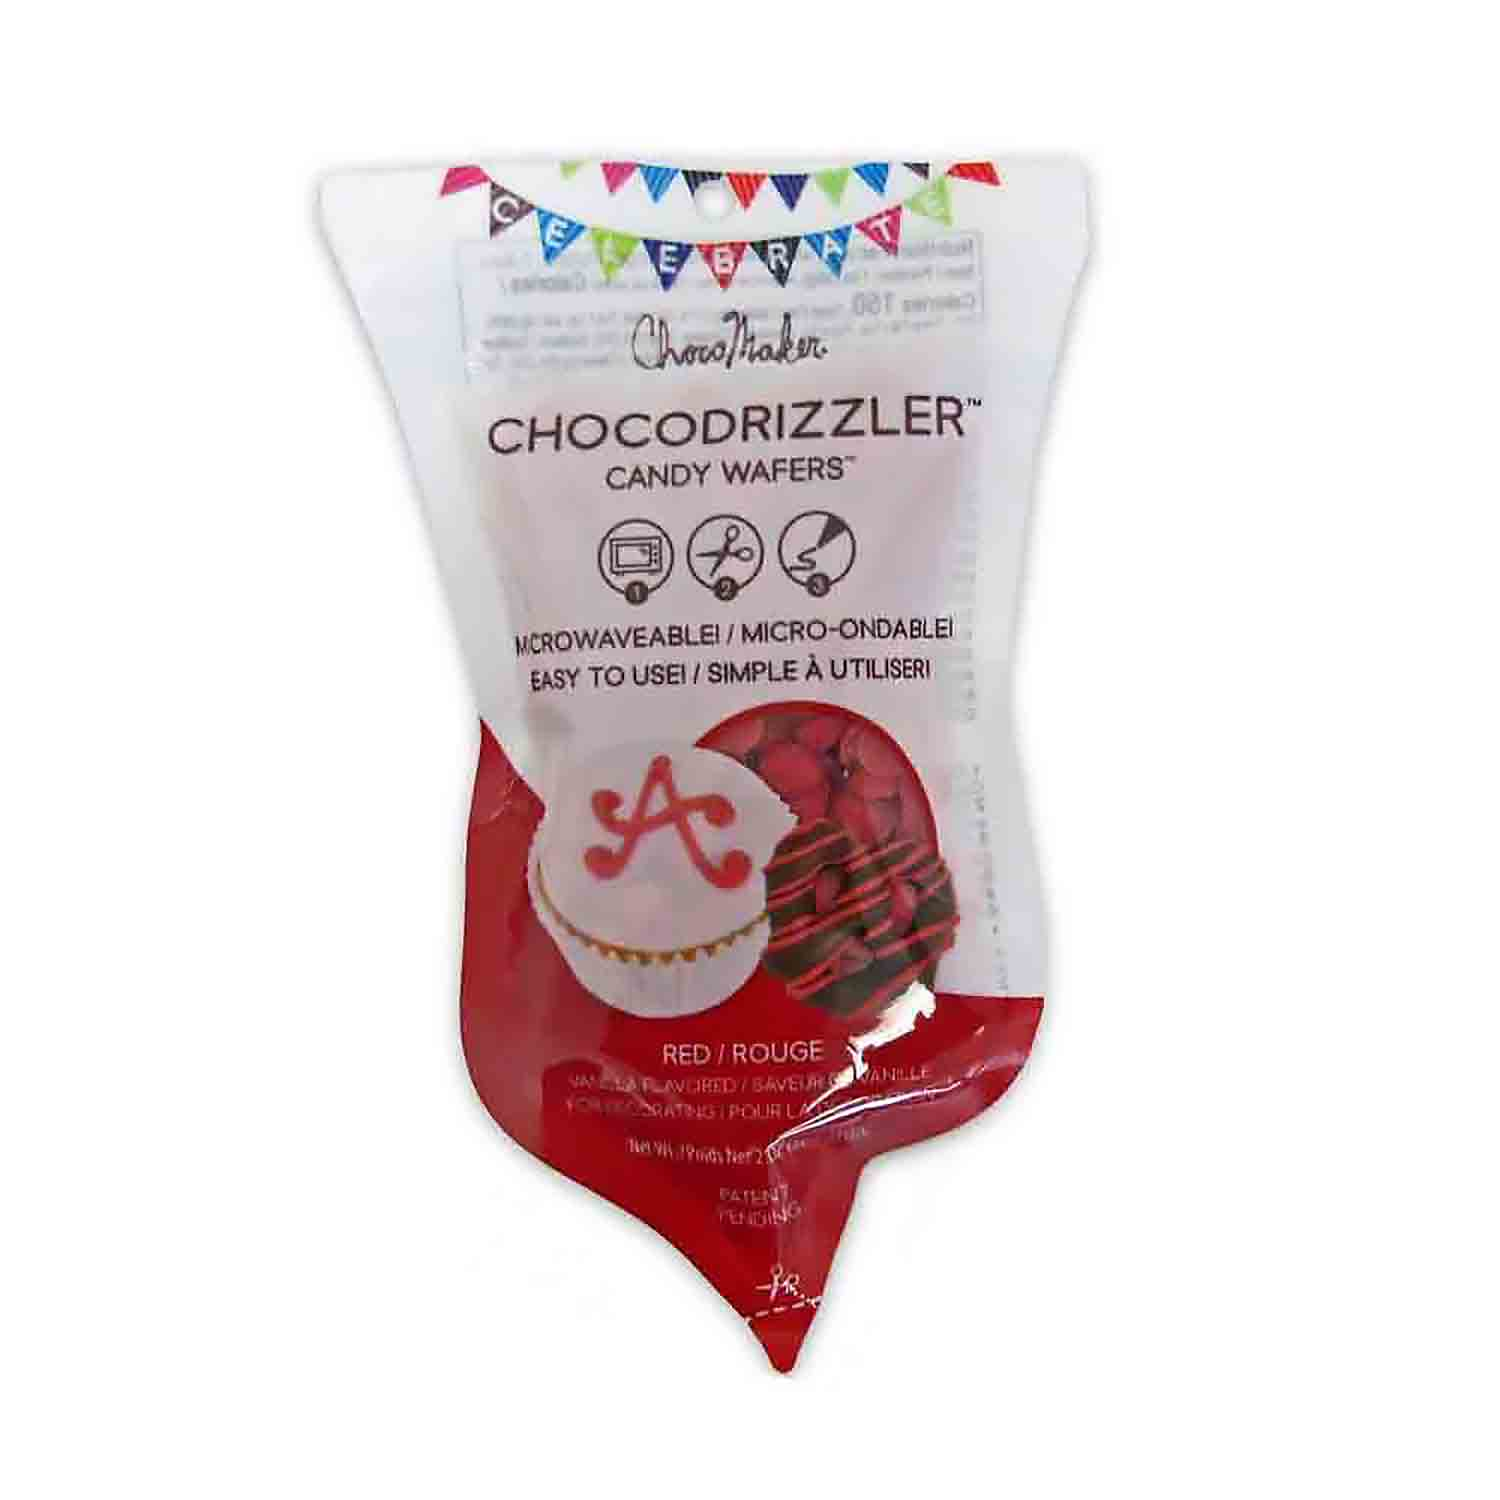 Red CHOCODRIZZLER Candy Wafer Pouch